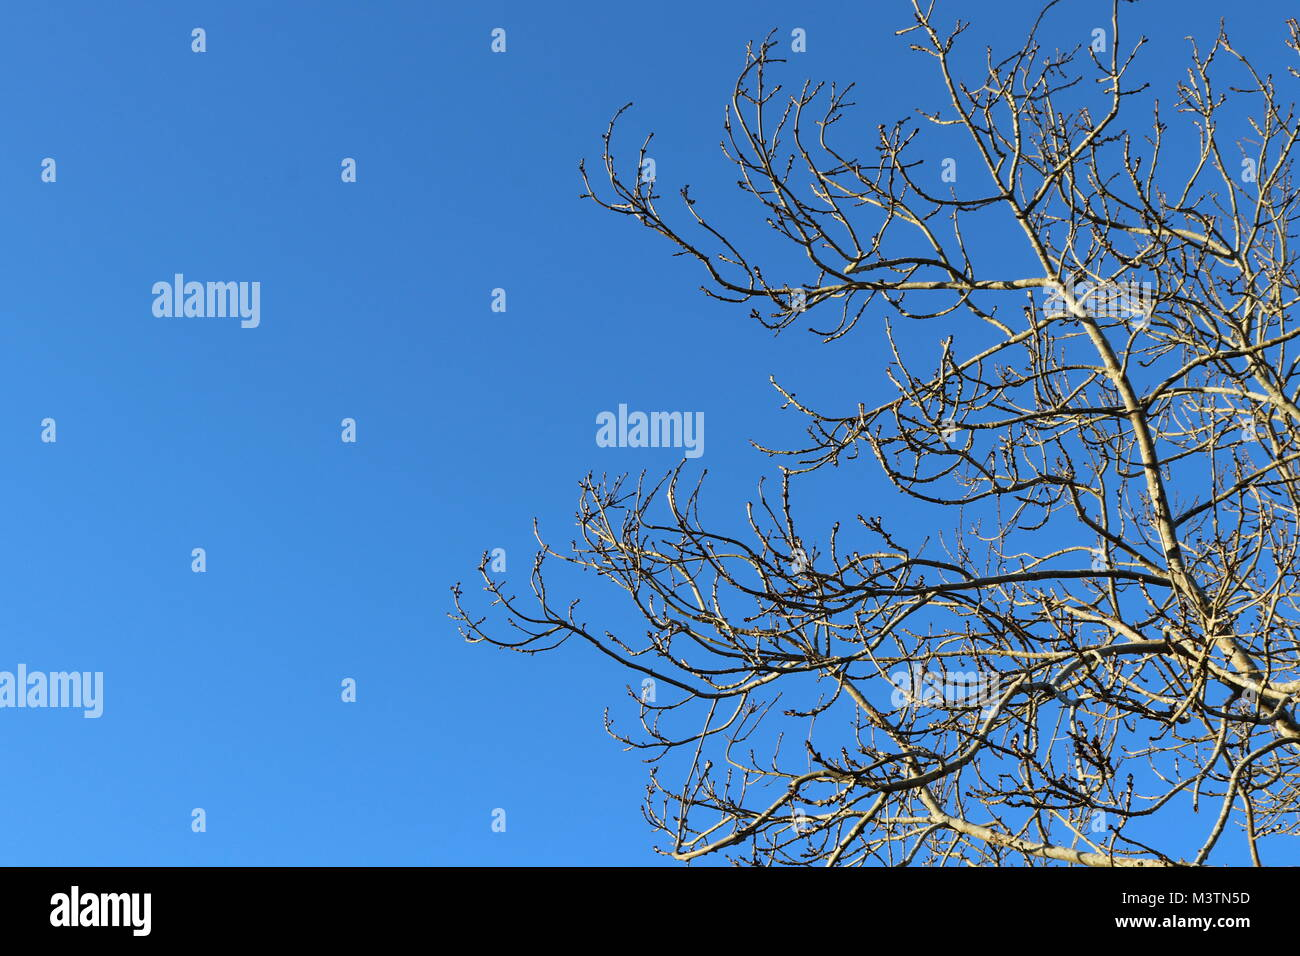 Winter trees, bare branches, blue sky - Stock Image